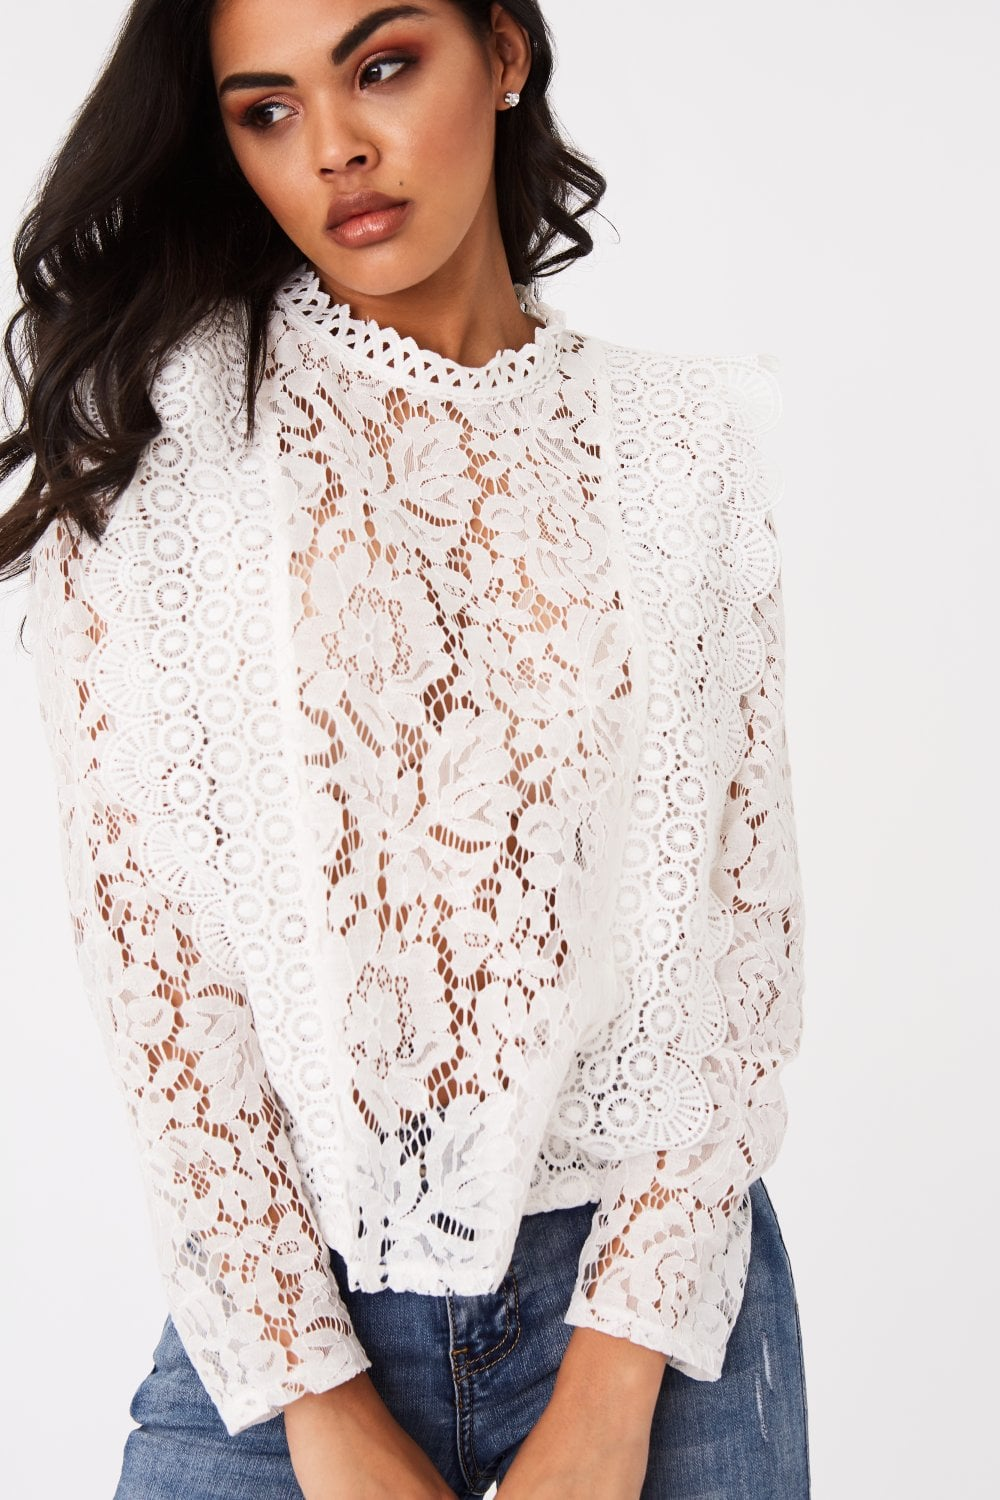 ISLA white lace top